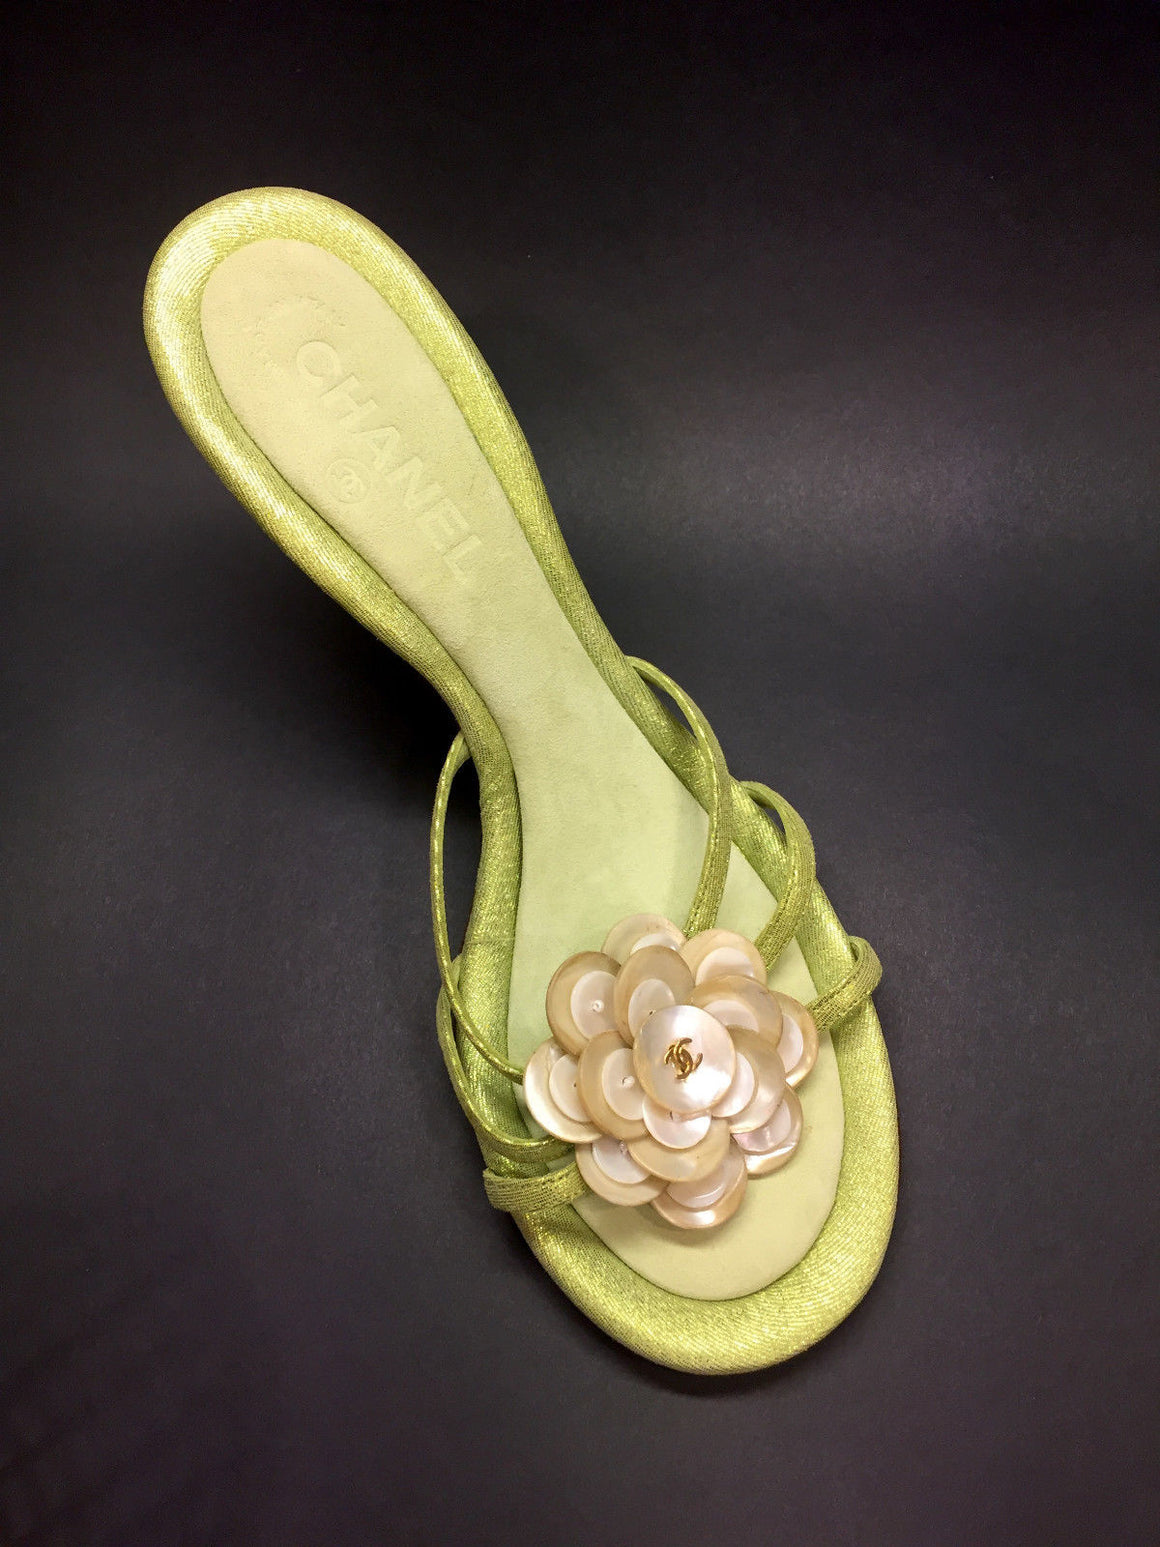 bisbiz.com CHANEL  Vintage - New Iridescent-Green Suede Mother-of-Pearl Camellia Heel Mules Sandals Size: 39.5 / 9.5 - Bis Luxury Resale